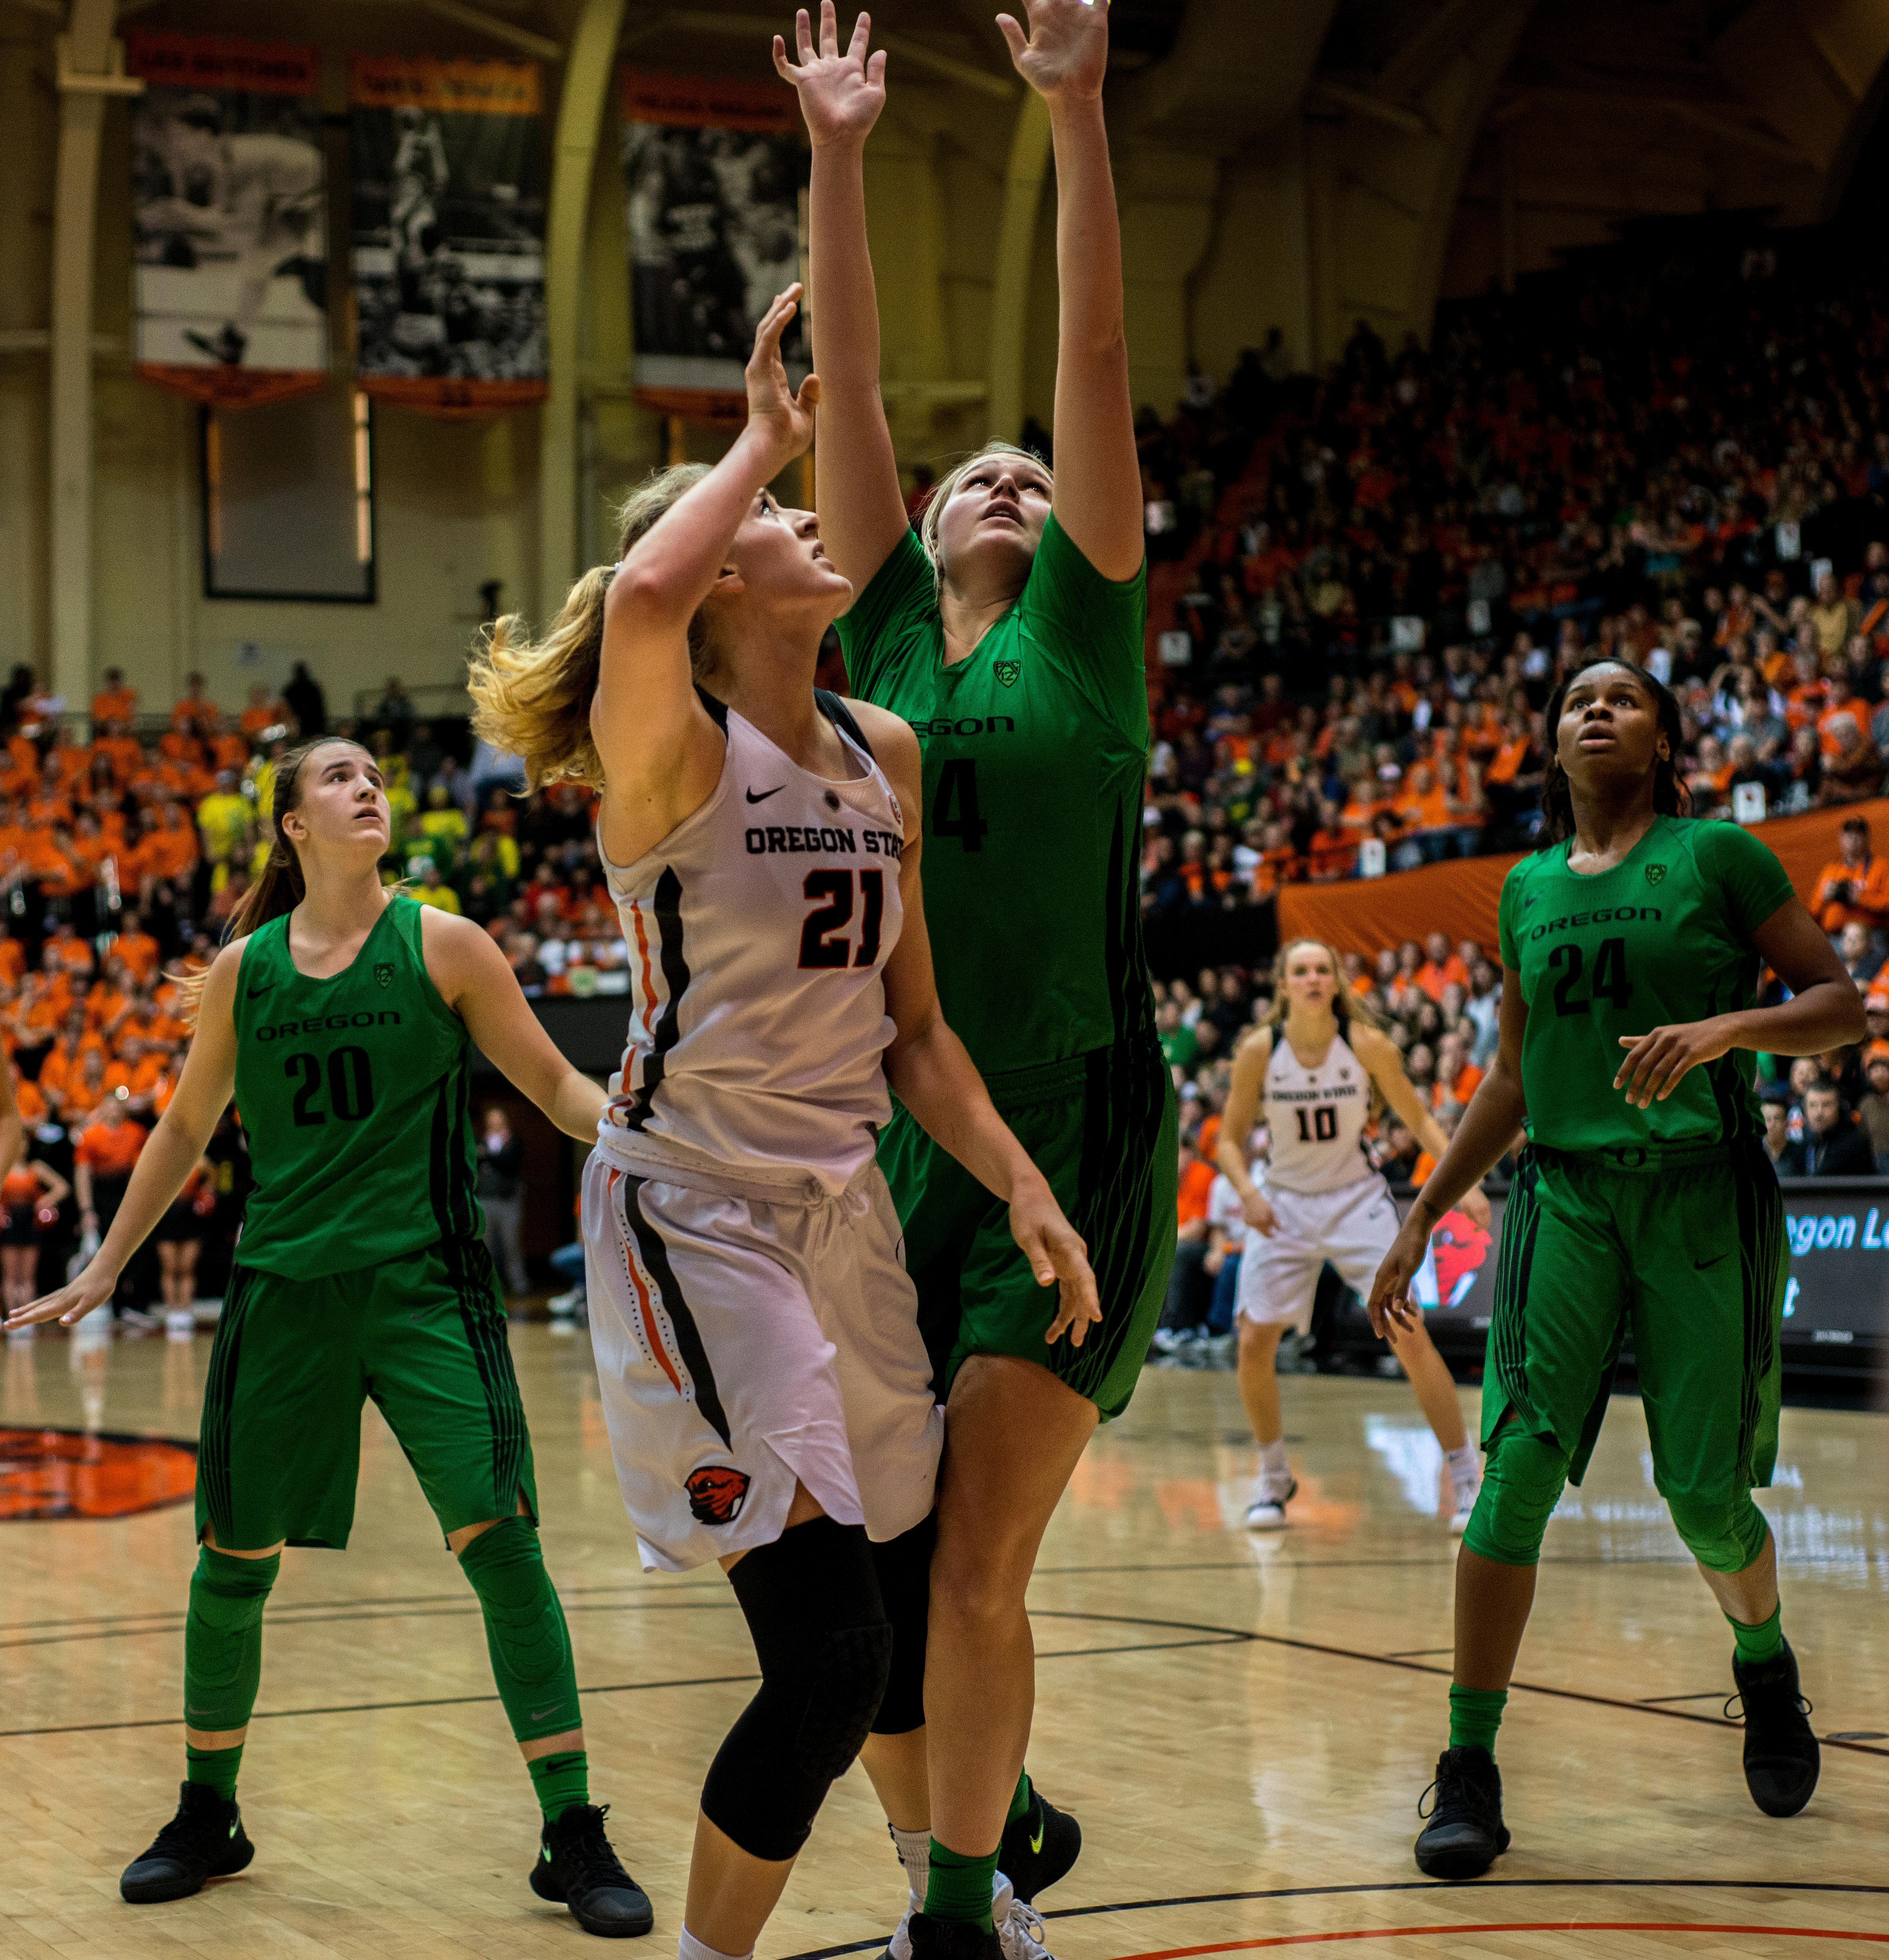 Oregon Ducks guard Sabrina Ionescu (#20) and forwards Ruthy Hebard(#24) and Mallory McGwire (#44) watch Oregon State Beavers forward Marie Gülich (#21) make a shot.The Oregon Ducks were defeated by the Oregon State Beavers 85-79 on Friday night in Corvallis. Sabrina Ionescu scored 35 points and Ruthy Hebard added 24. The Ducks will face the Beavers this Sunday at 5 p.m. at Matthew Knight Arena. Photo by Abigail Winn, Oregon News Lab